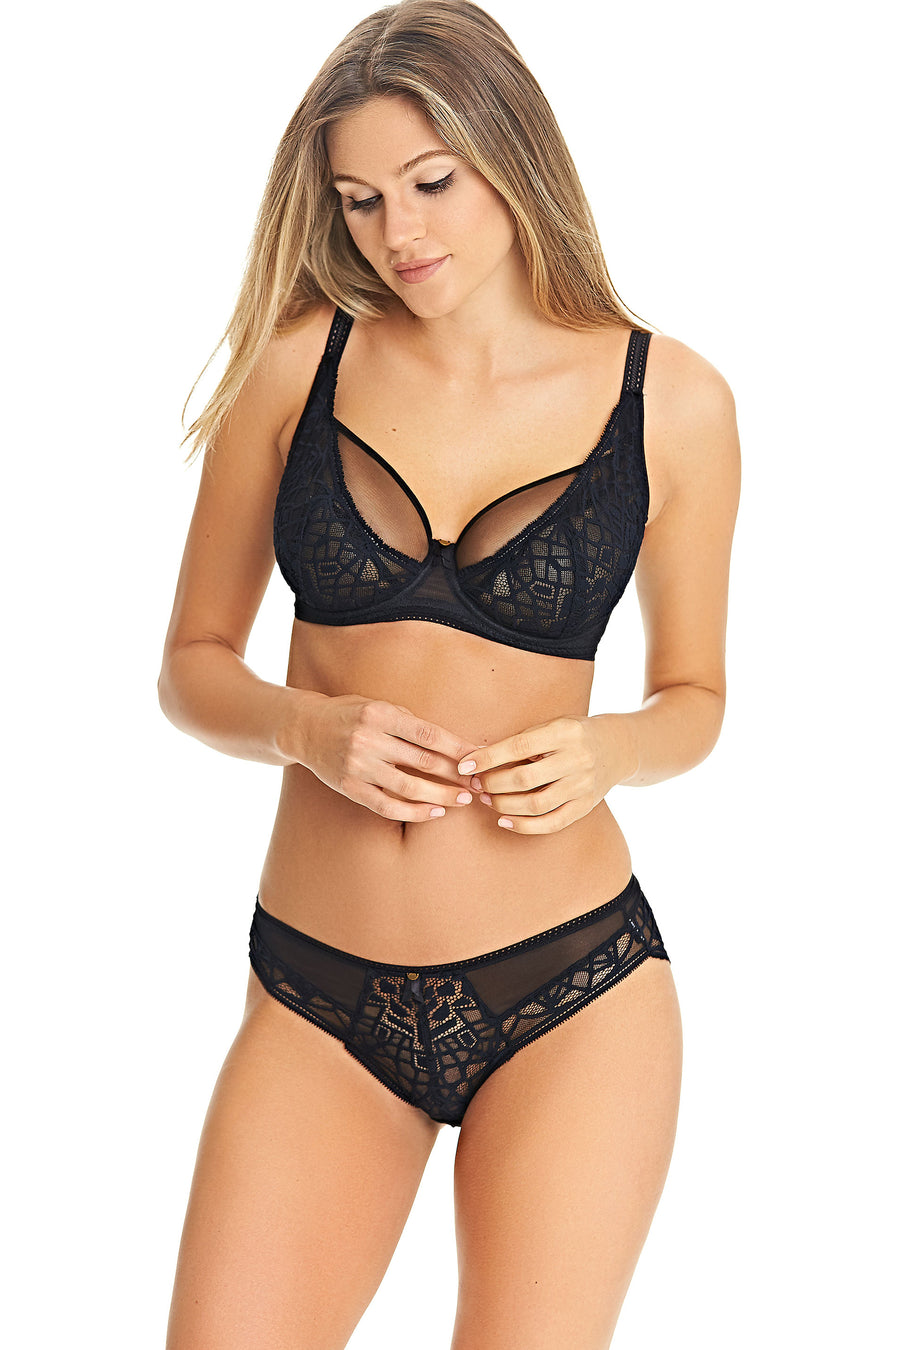 Freya - Soiree Lace Black High Apex Bra